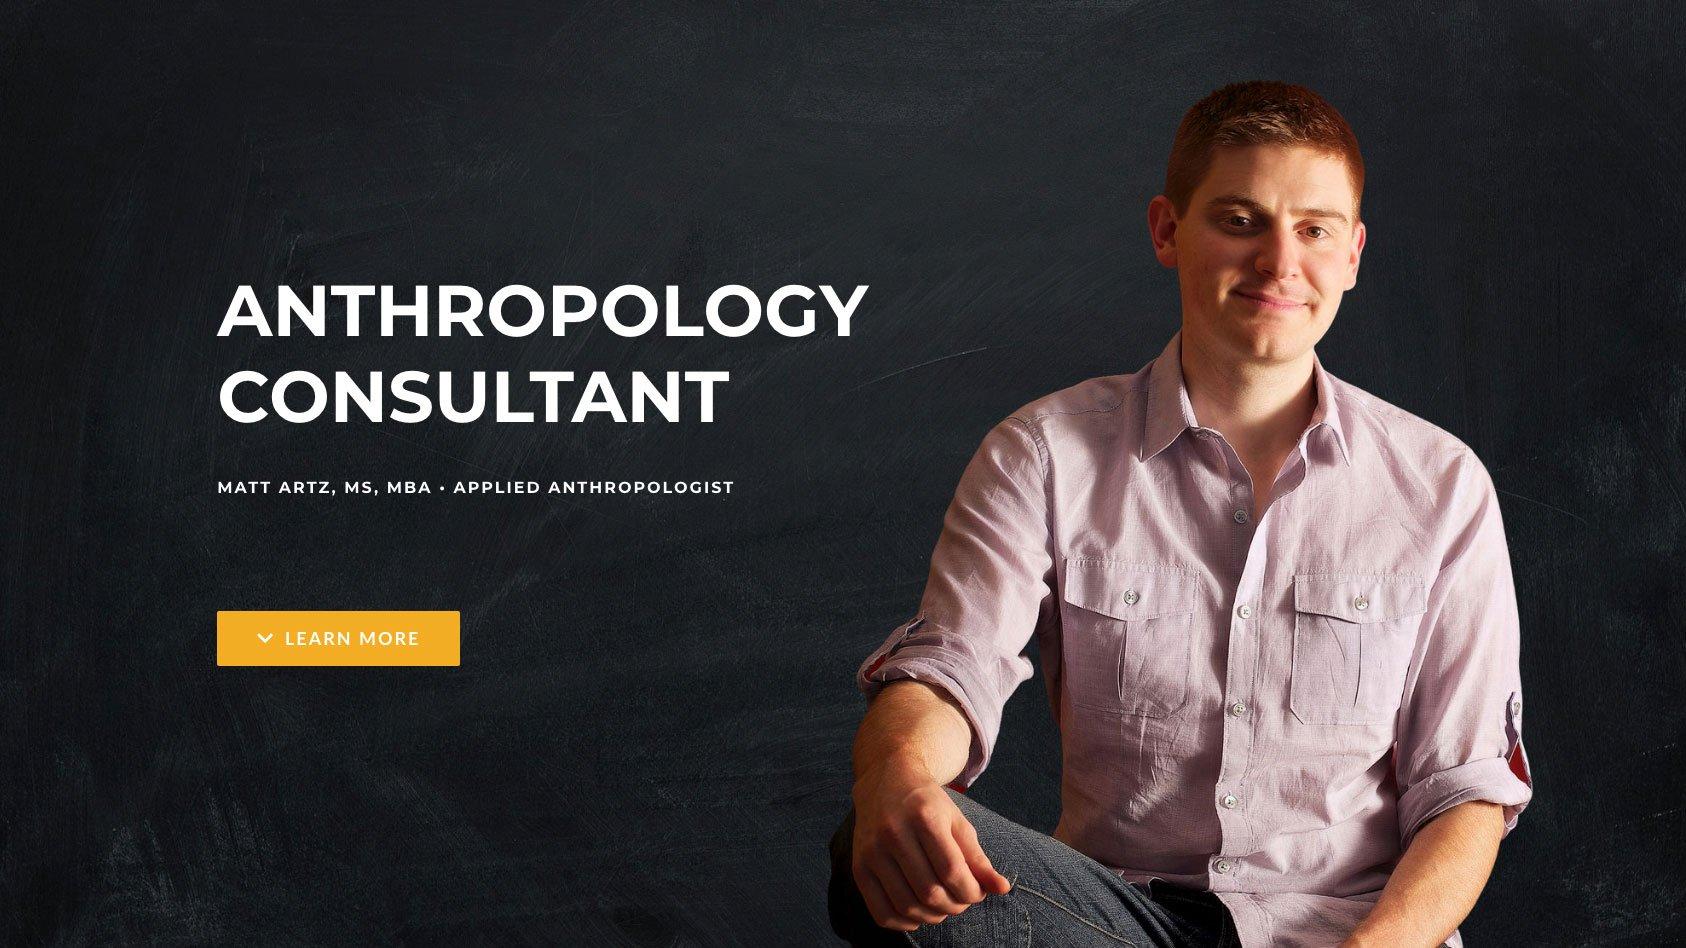 Anthropology Consultant Microsite